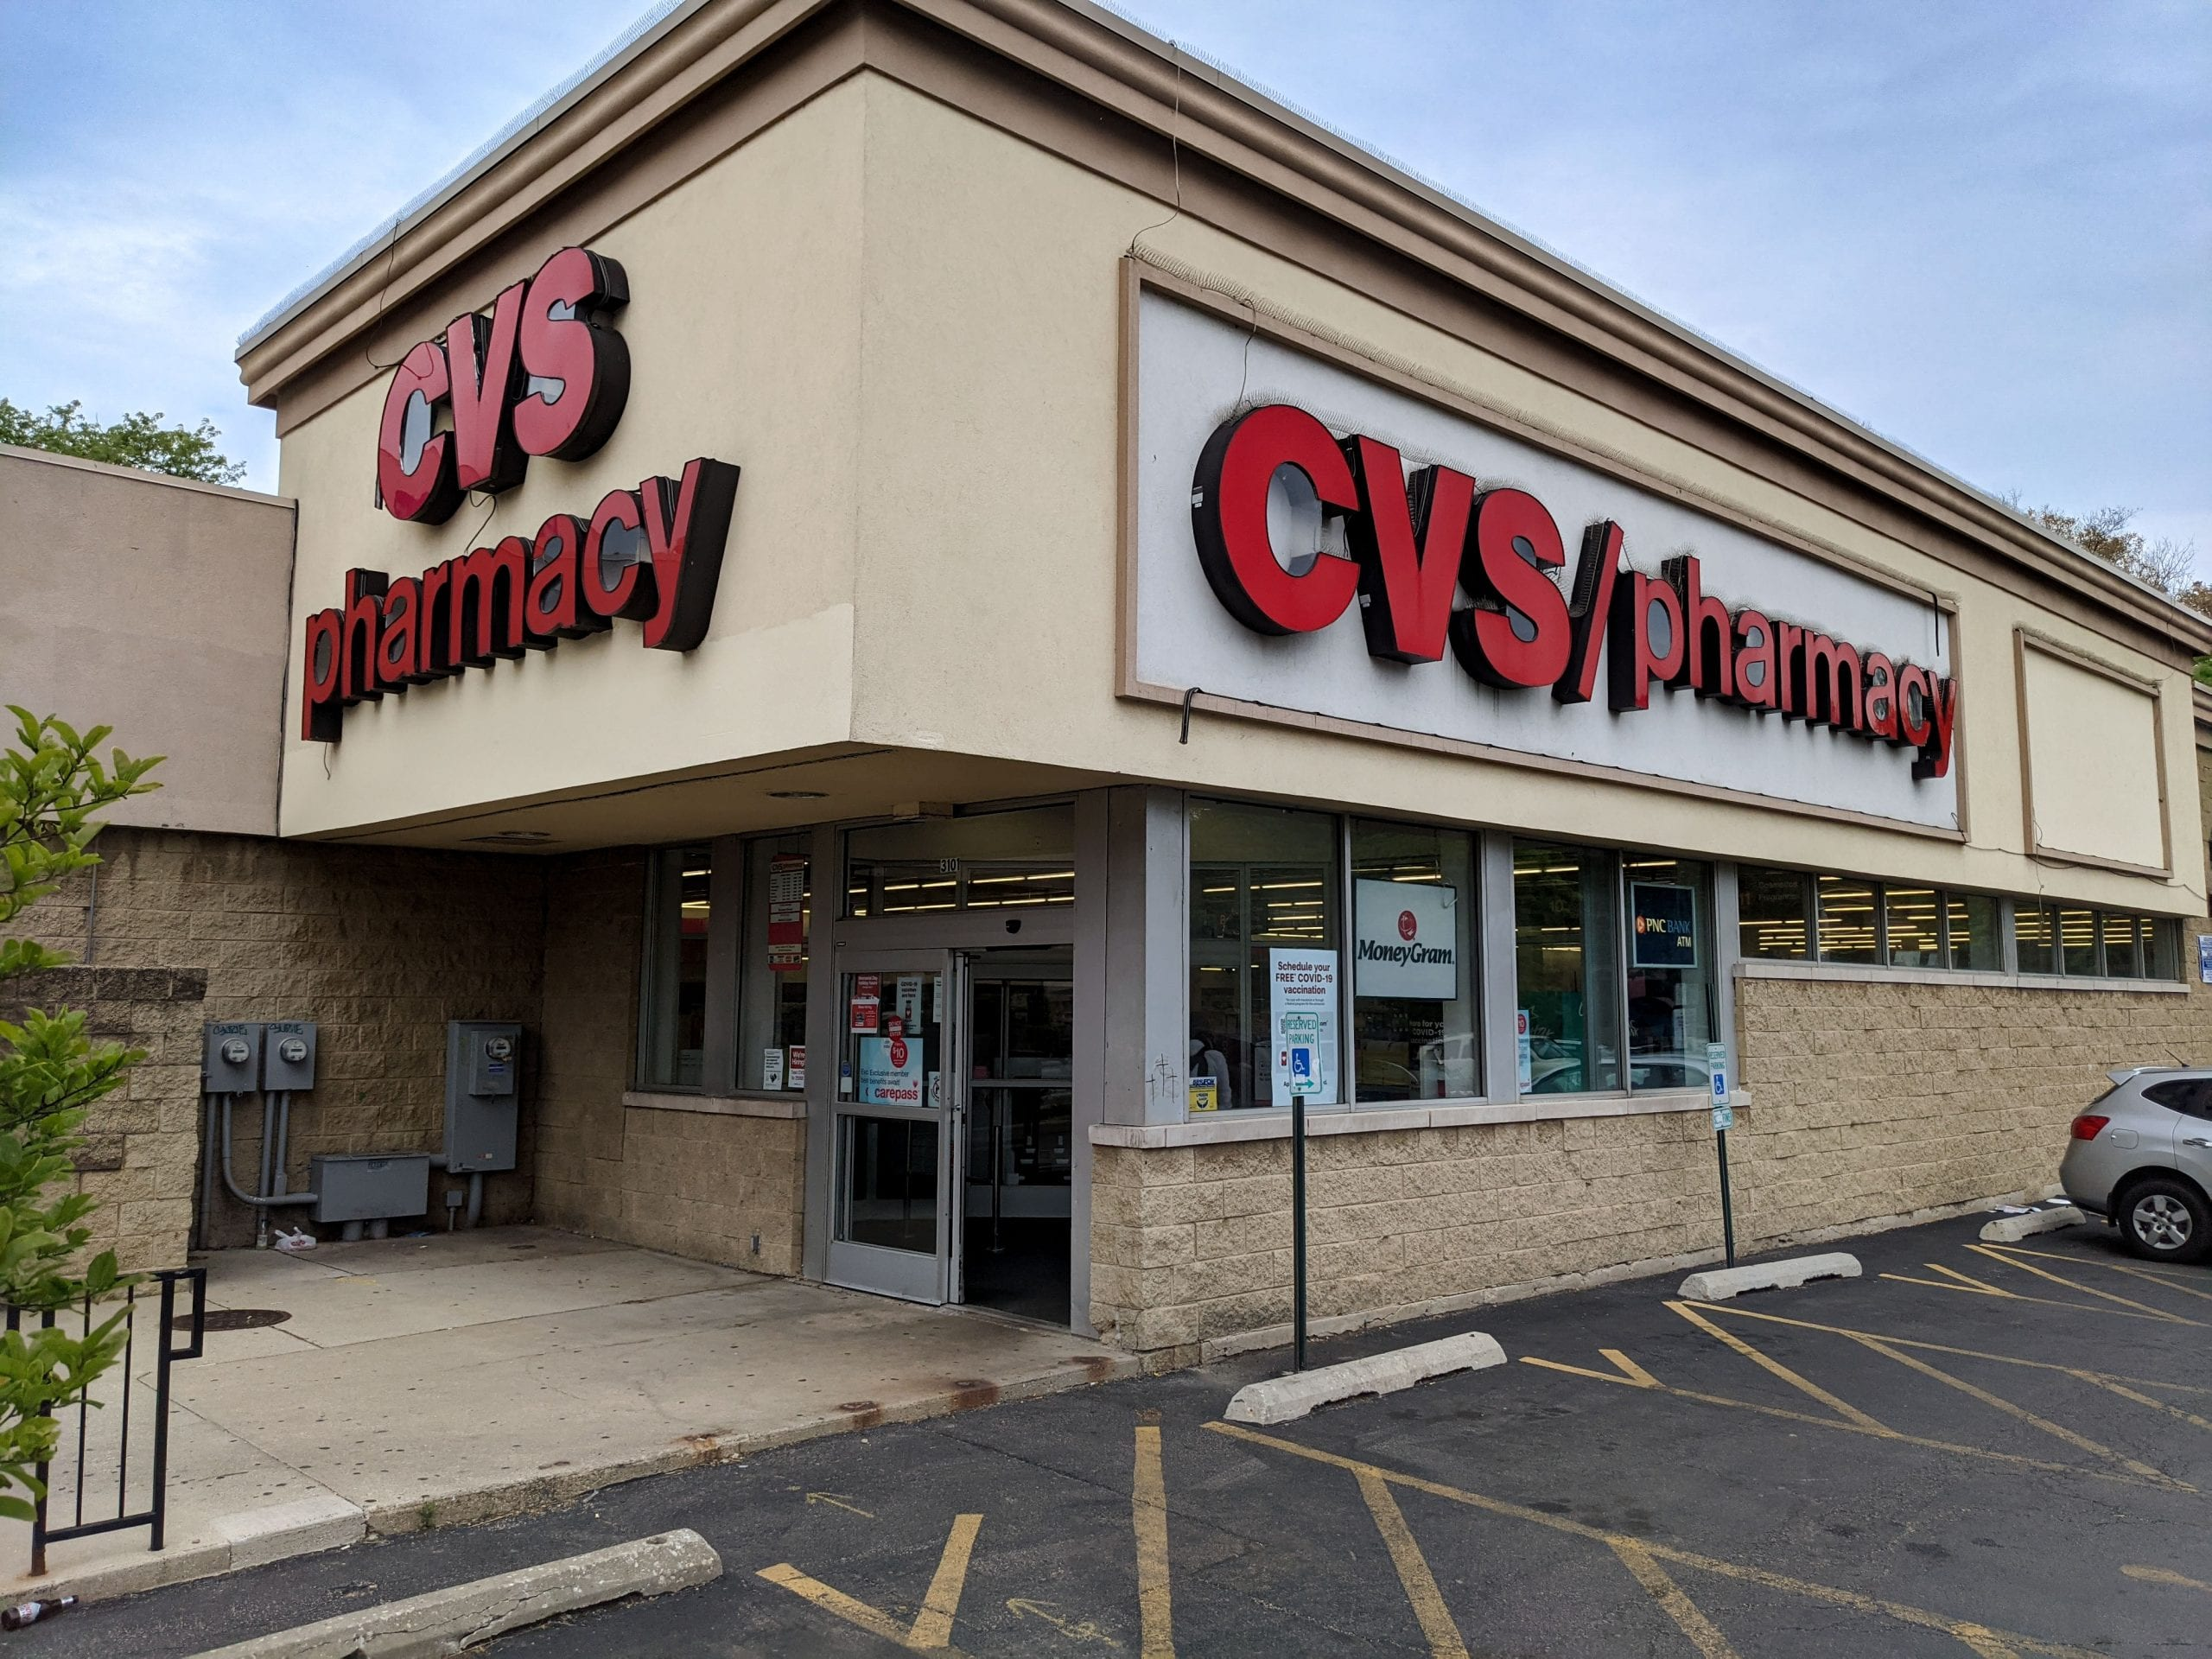 CVS pharmacy northalsted chicago lakeview